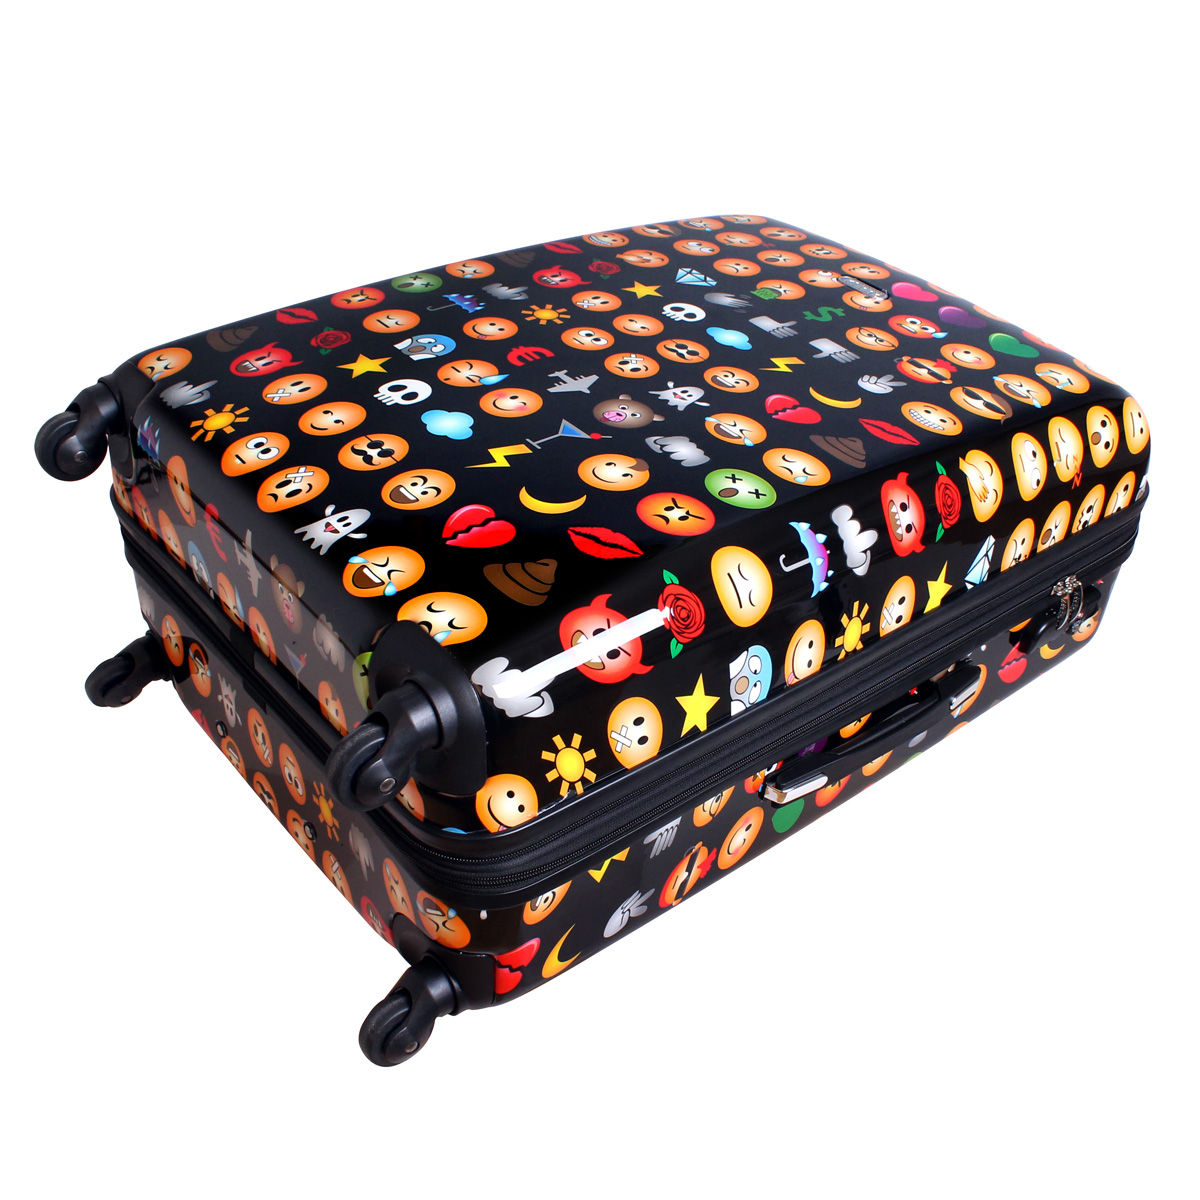 xxl hartschalen reise koffer trolley reisekoffer 4 rollen case smileys emoji ebay. Black Bedroom Furniture Sets. Home Design Ideas